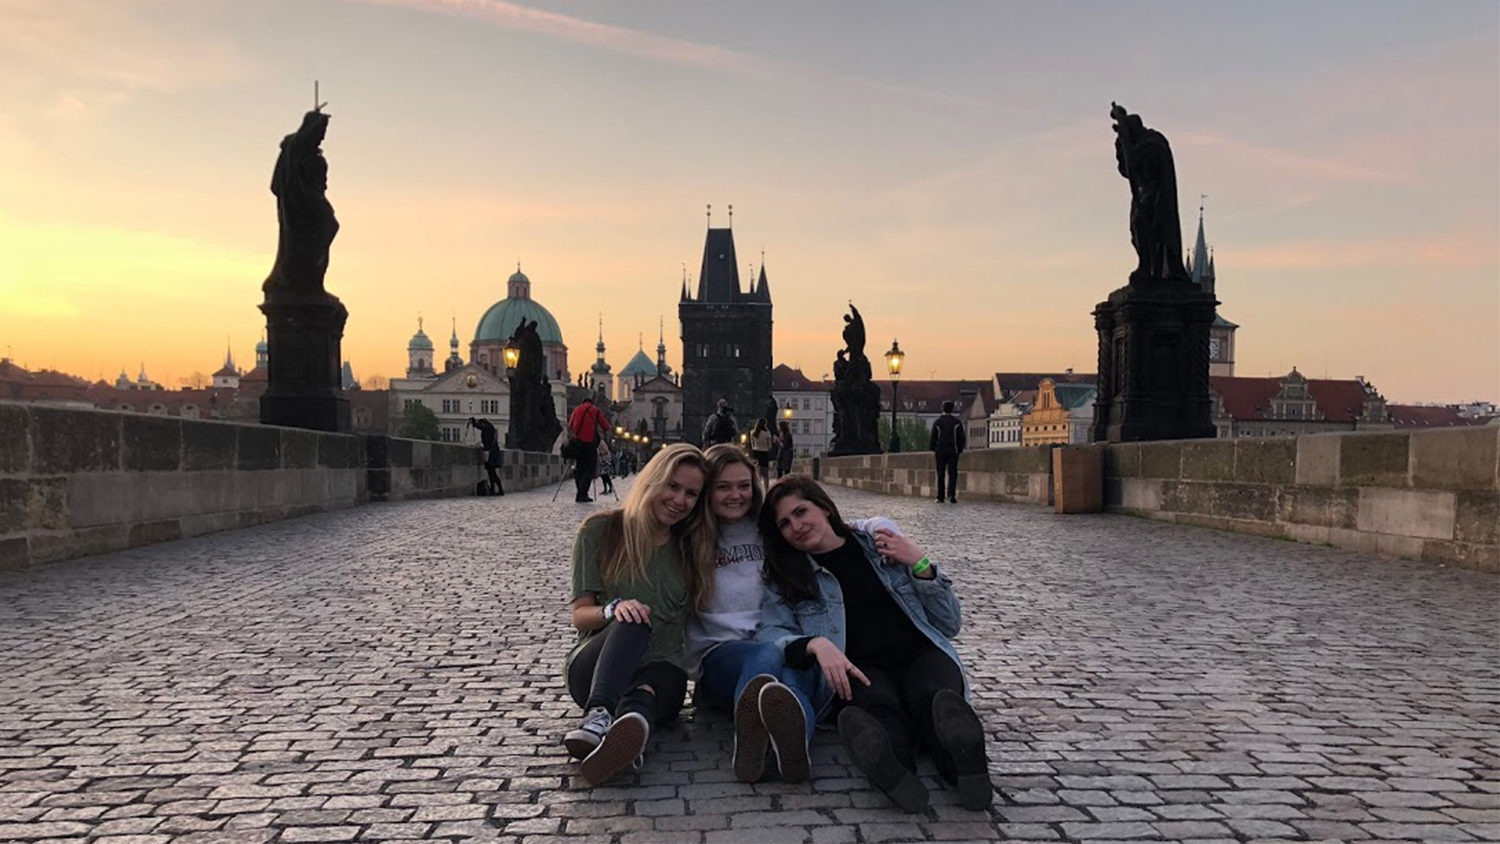 Students on Charles Bridge